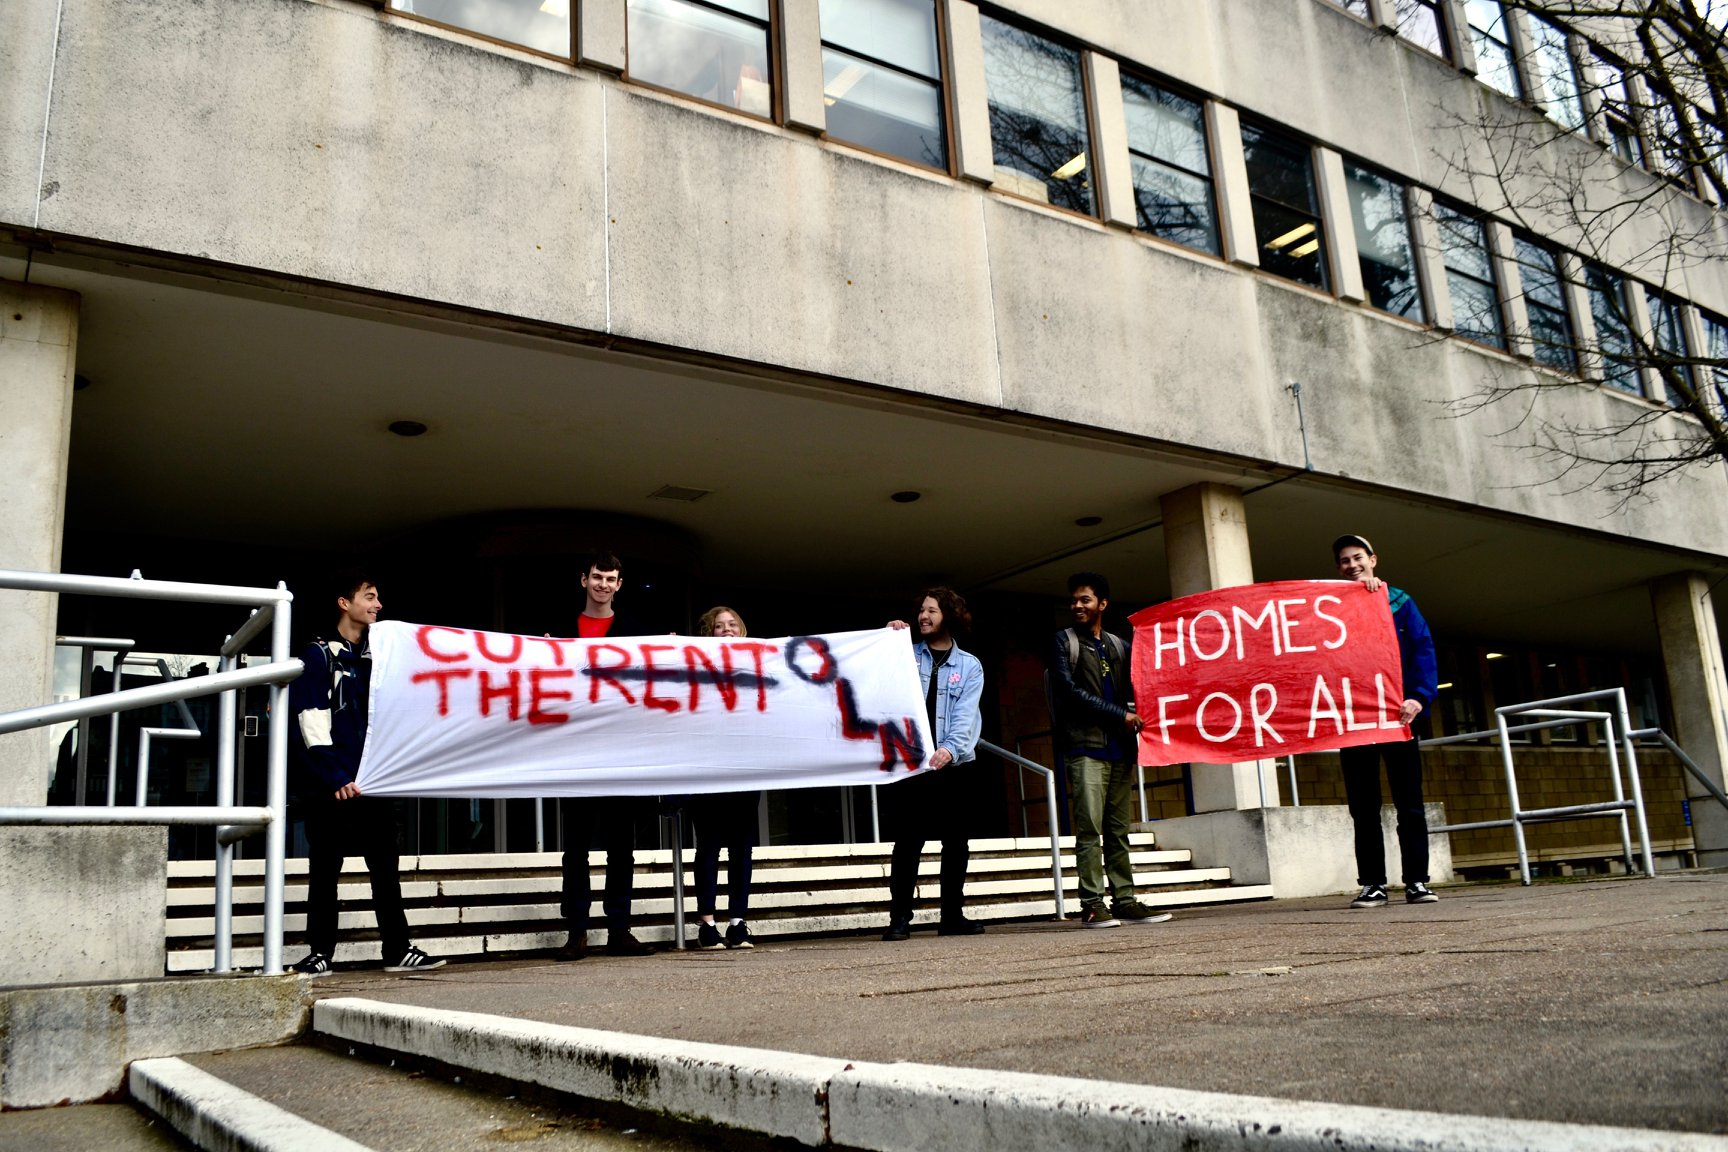 Oxford Cut the Rent - https://www.facebook.com/oxfordleftnetwork/